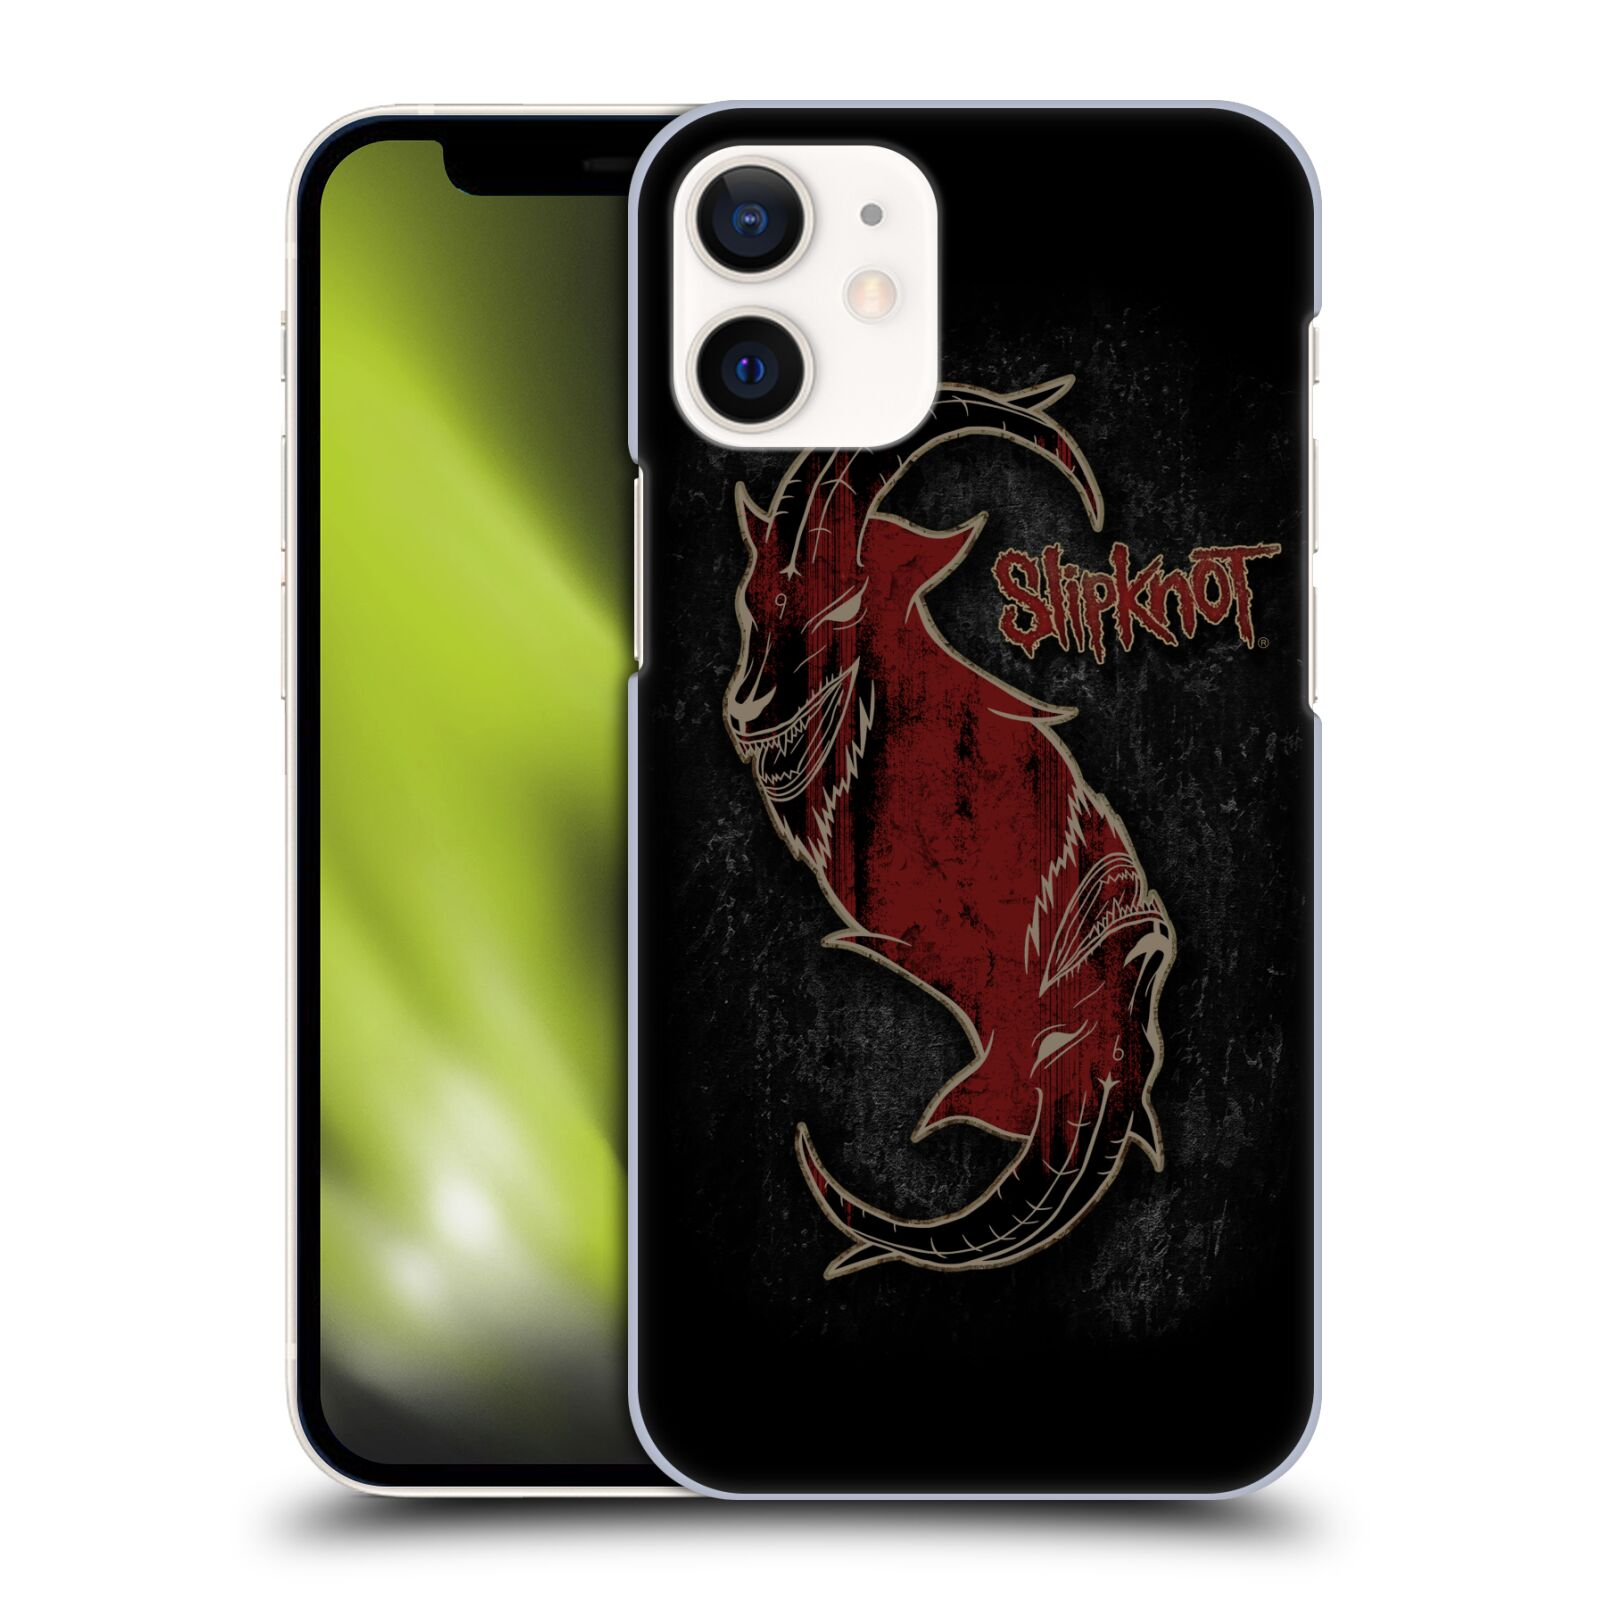 Plastové pouzdro na mobil Apple iPhone 12 Mini - Head Case - Slipknot - Rudý kozel